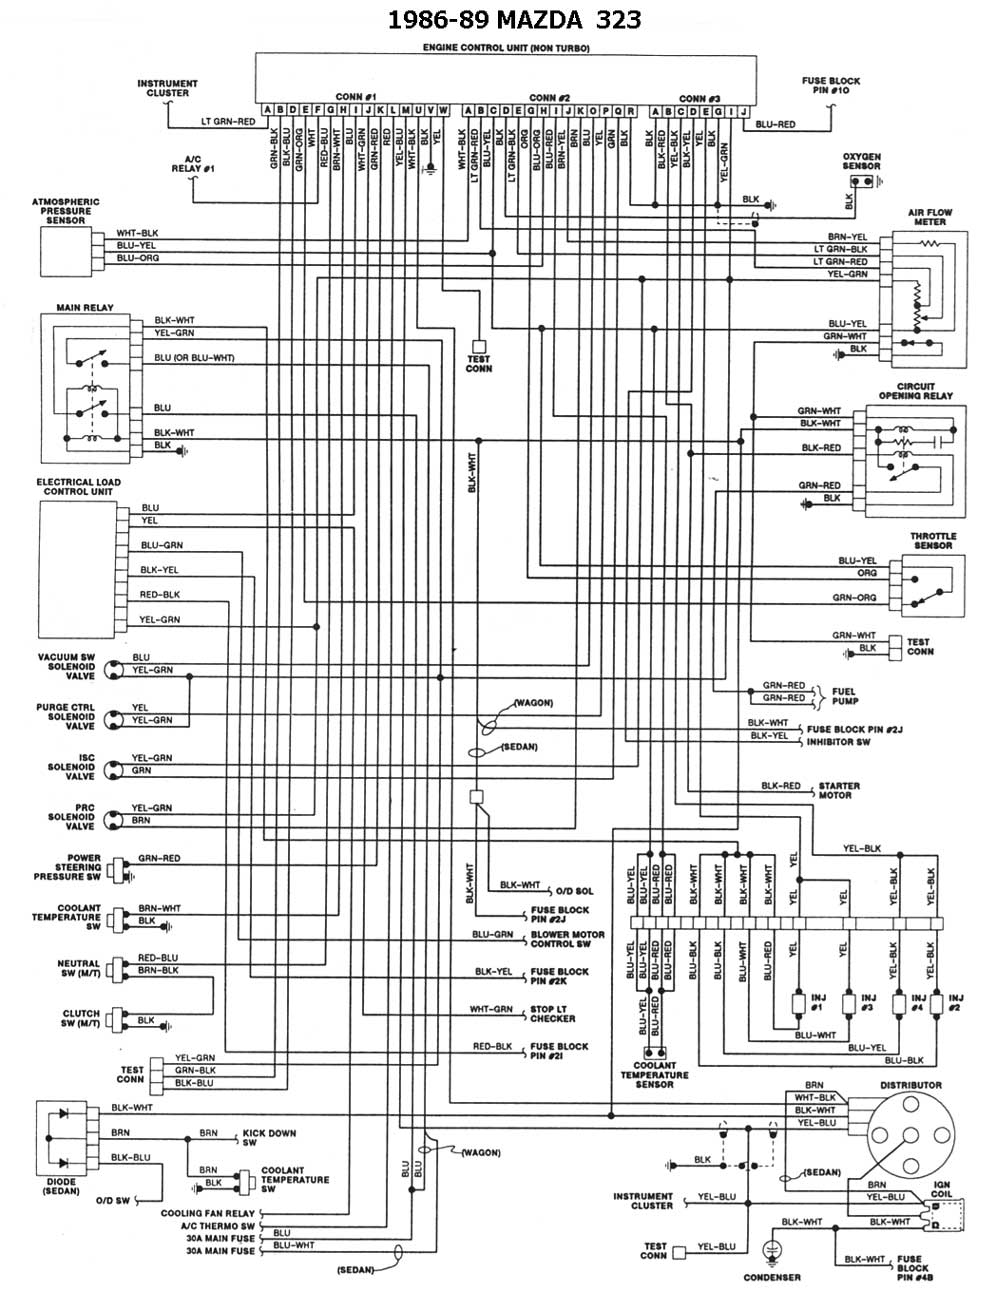 Alternator wiring diagram mitsubishi pajero